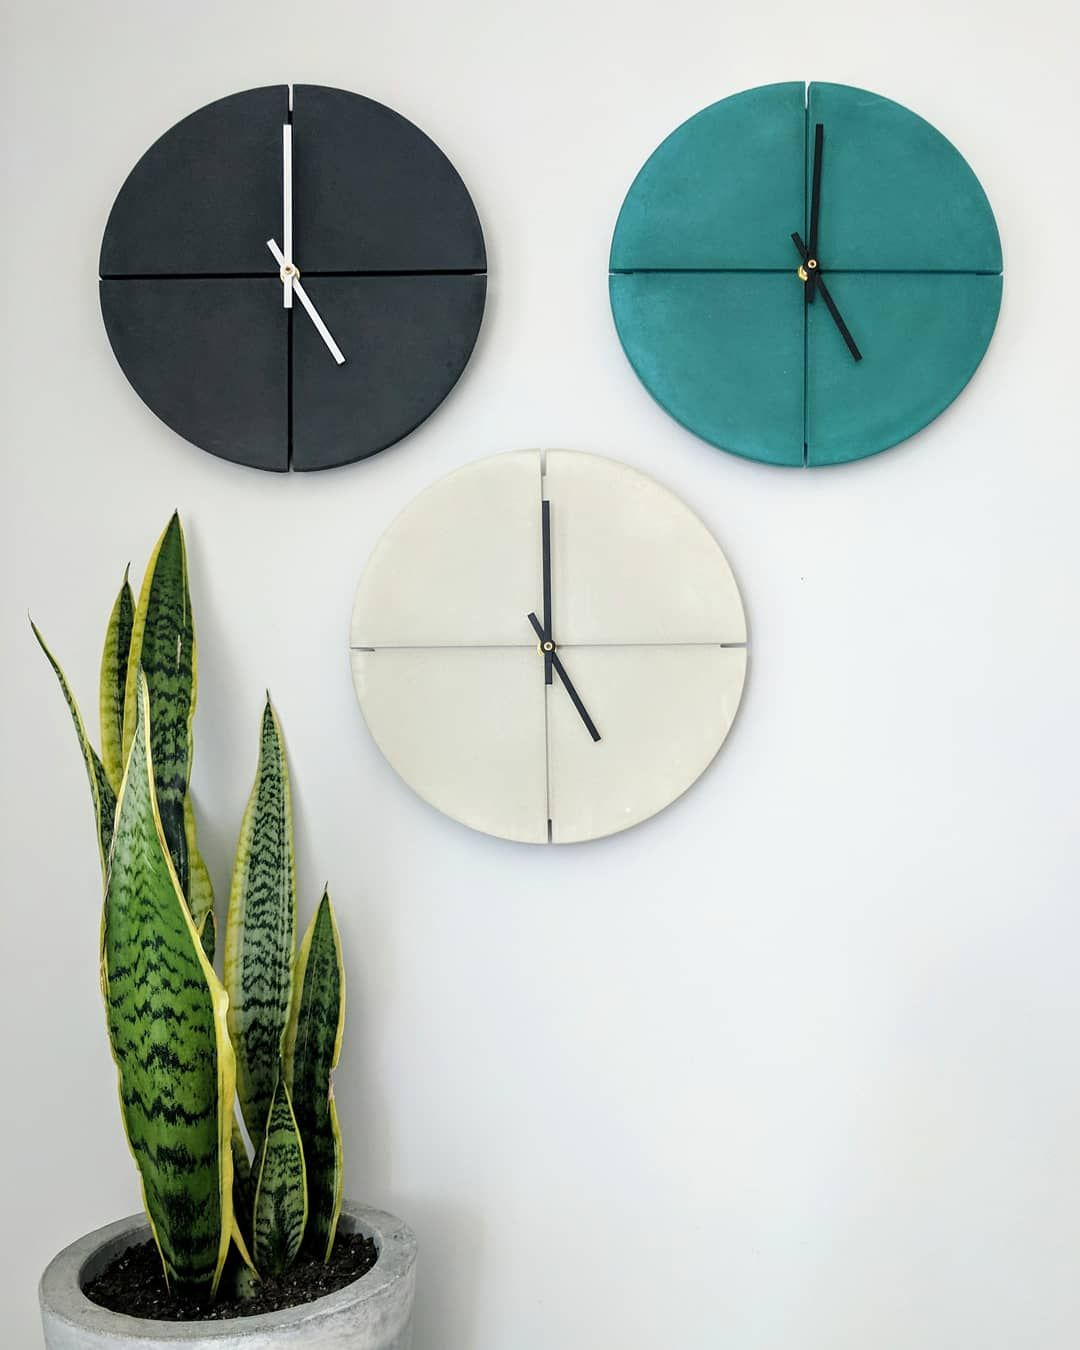 Modern Wall Clock 11 Concrete Clock Round Industrial Etsy In 2020 Clock Wall Decor Wall Clock Wall Clock Modern